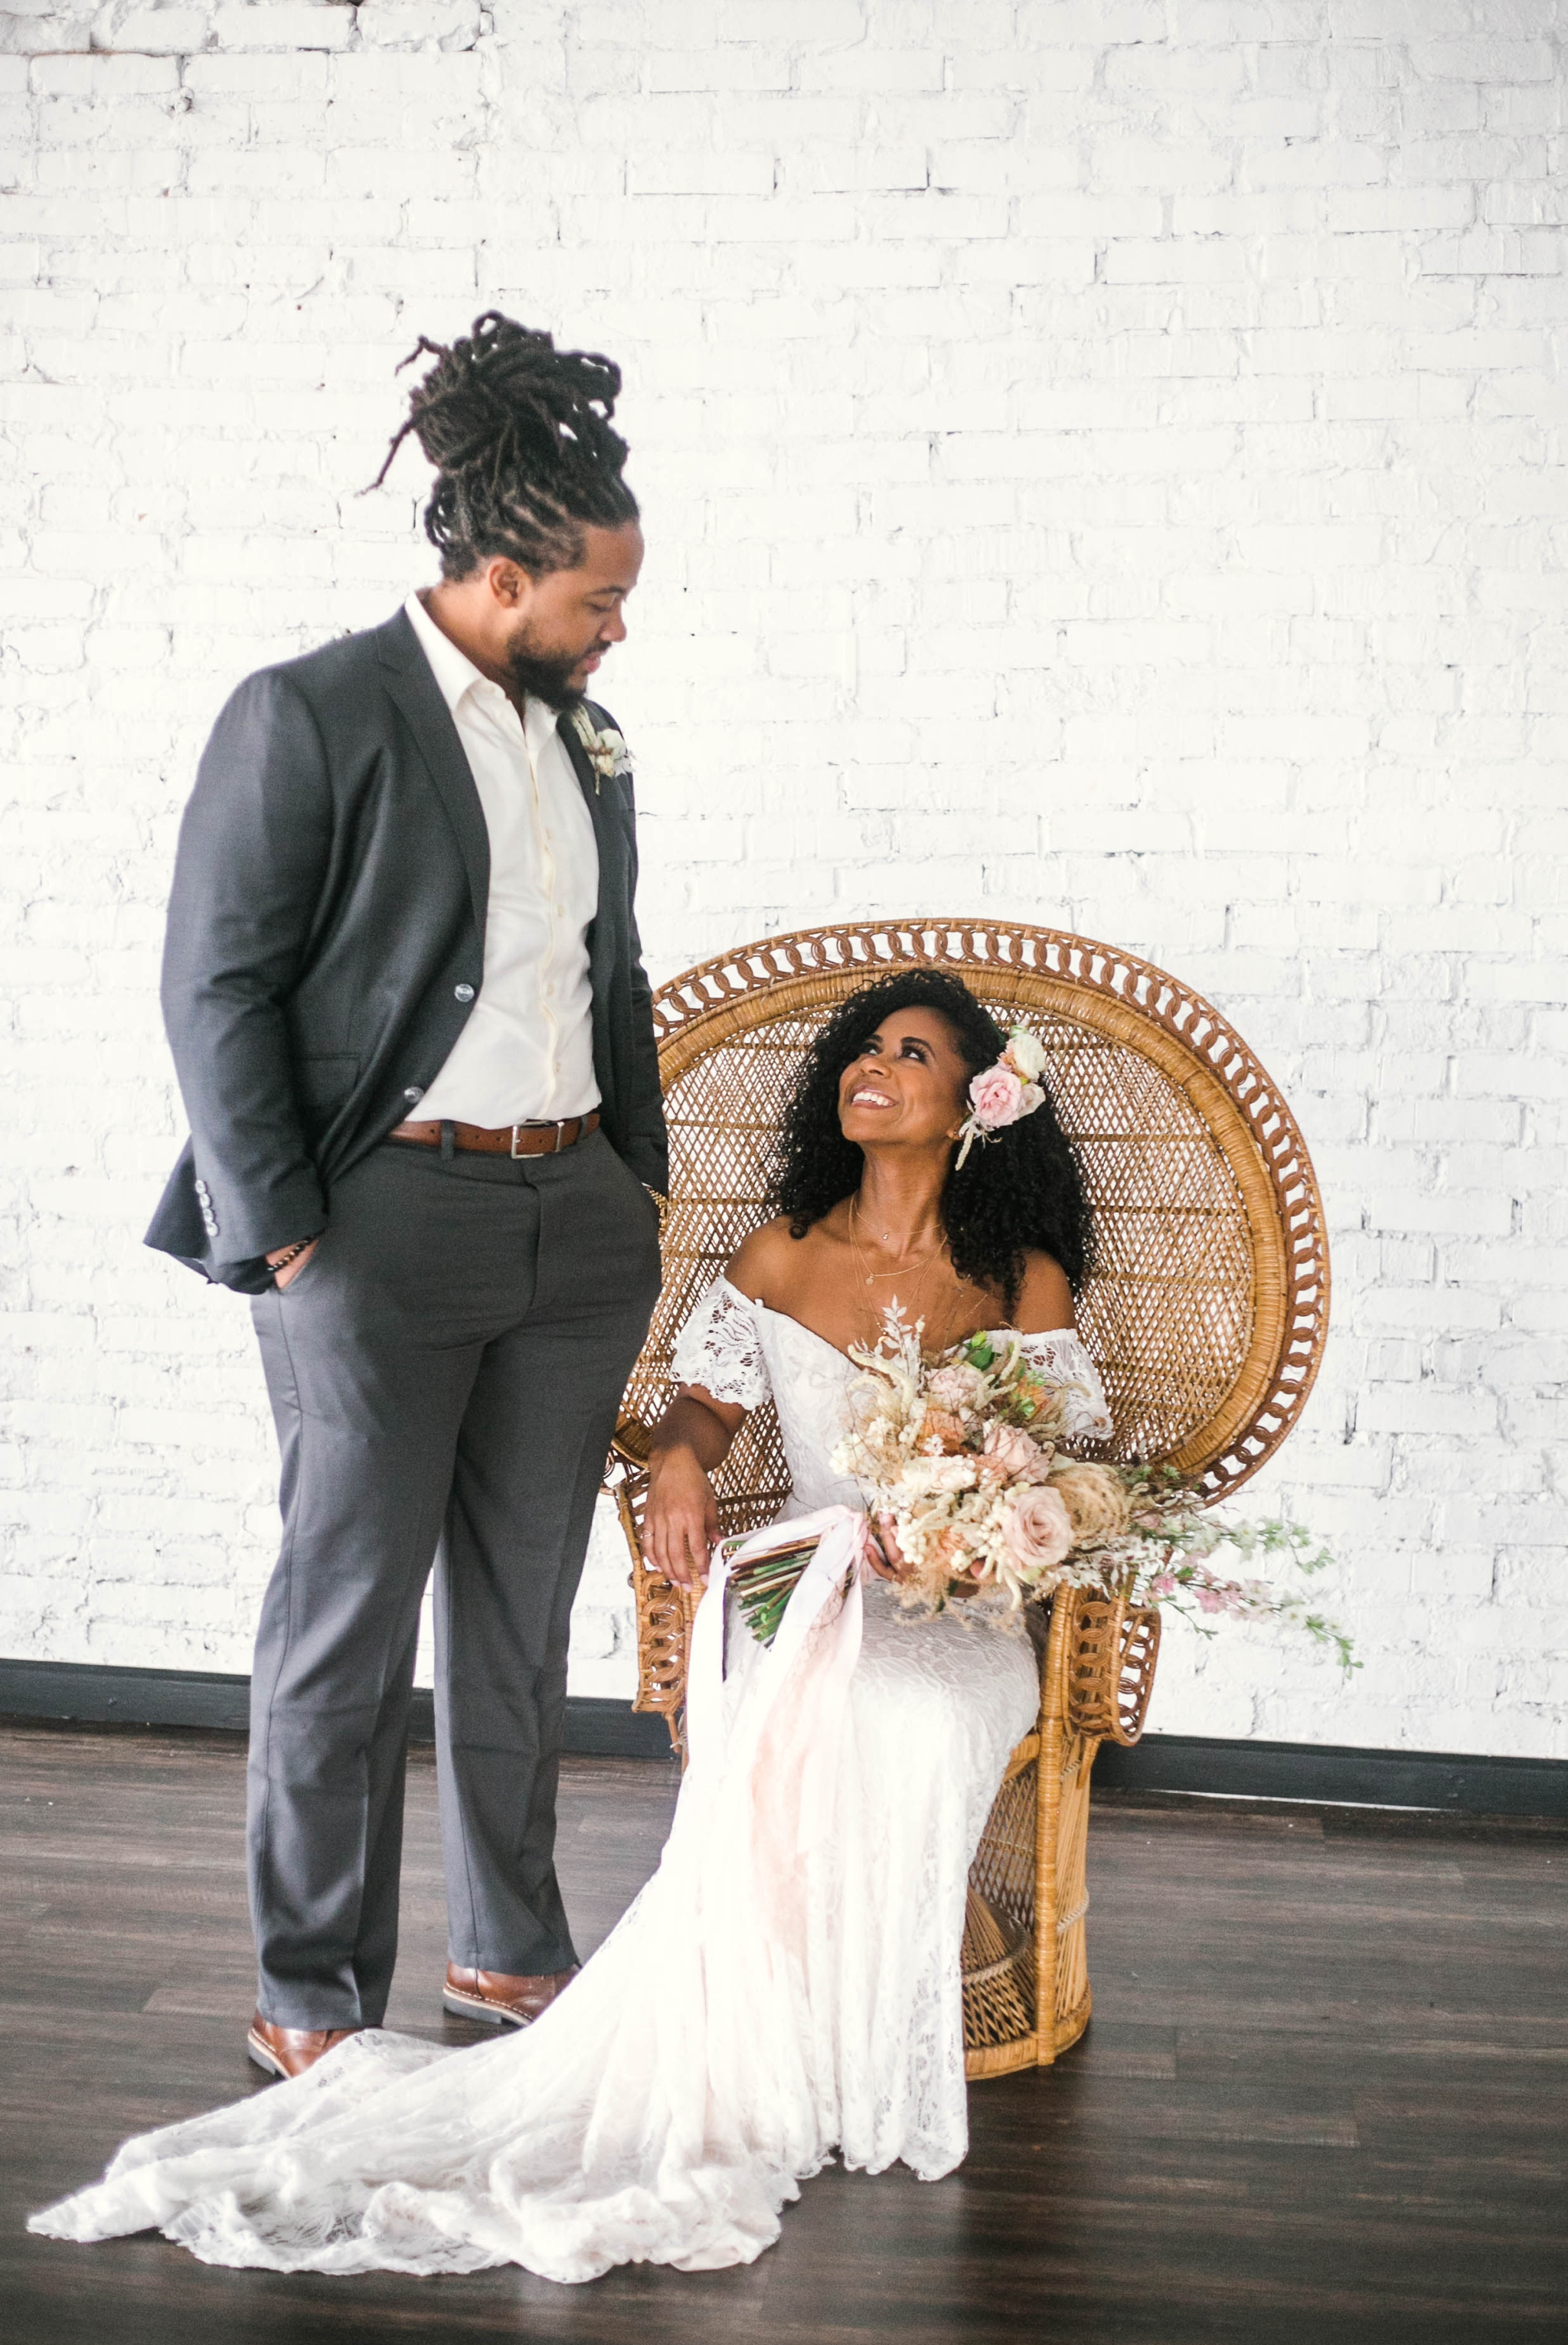 Indoor Bride and Groom Portraits, shot with natural light - black love - african american bride sitting in a Midcentury Woven Wicker Peacock Chair in a boho wedding dress with a big bouquet looking at her groom - honolulu, oahu, hawaii photographer